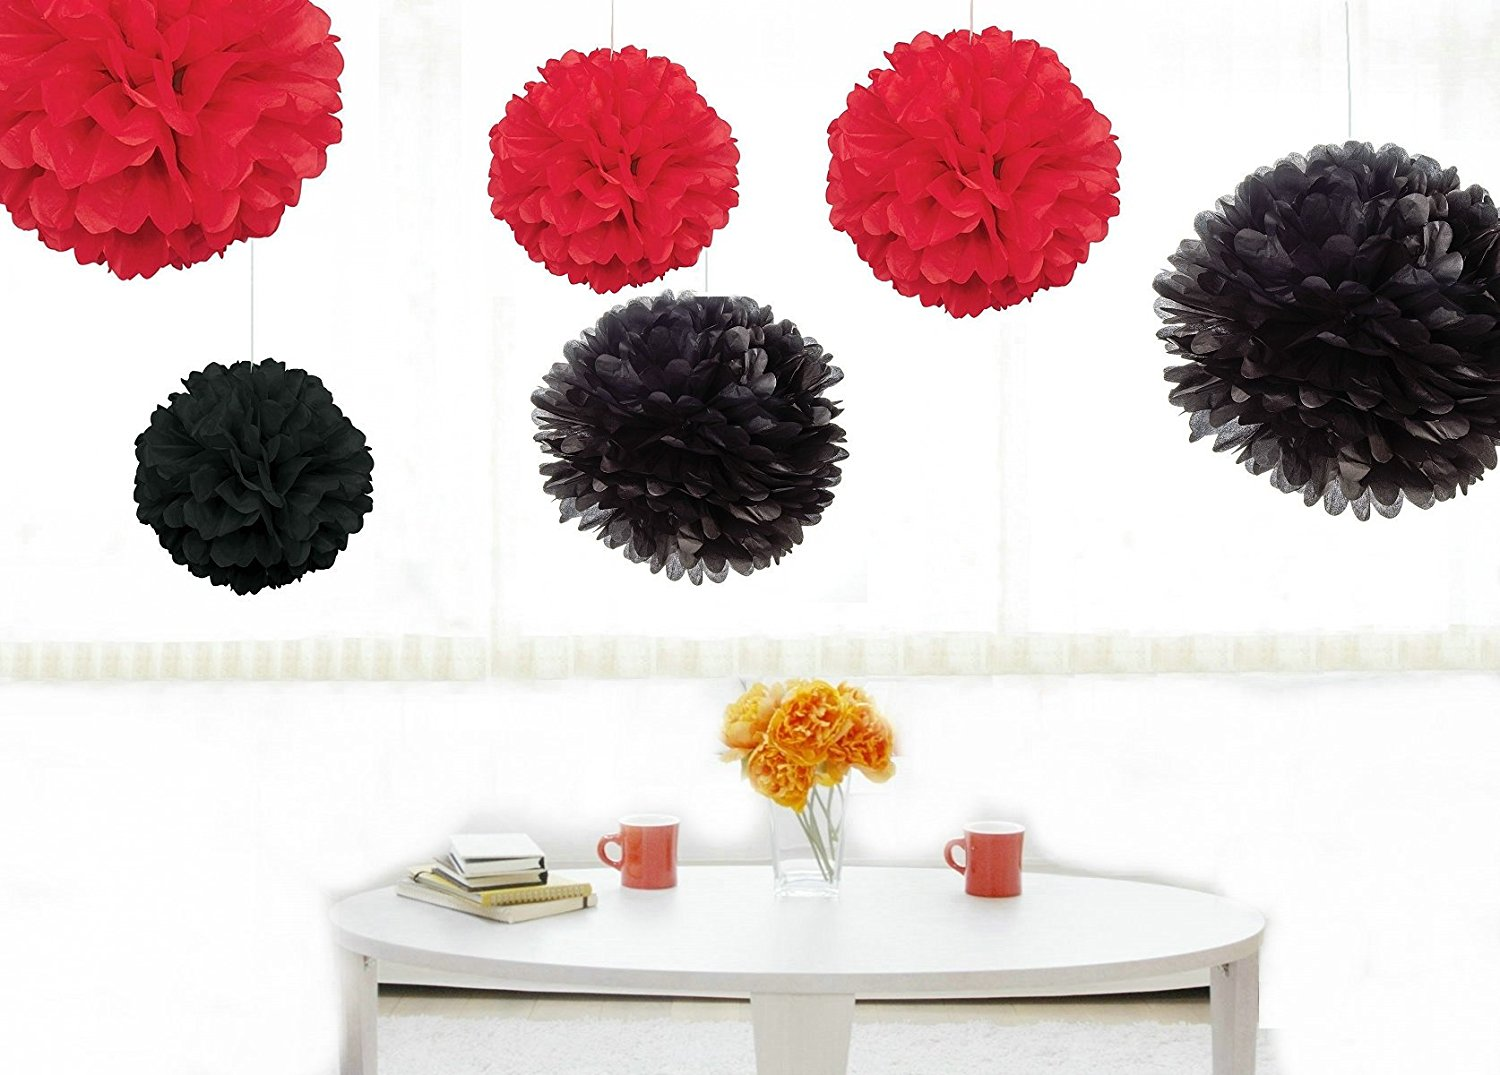 Kubert® Pom Poms - 12 pcs Tissue Paper Flowers, Black & Red ,3 Sizes,Tissue Paper Pom Poms,Best Mother's Day decoration,Wedding Decor,Party Decor,Pom Pom Flowers,Tissue Paper Pink,Tissue Paper Flowers Kit,Pom Poms Craft,Wedding Pom Poms,For Baby Shower,Pom Poms Pink,Pom Poms Decoration